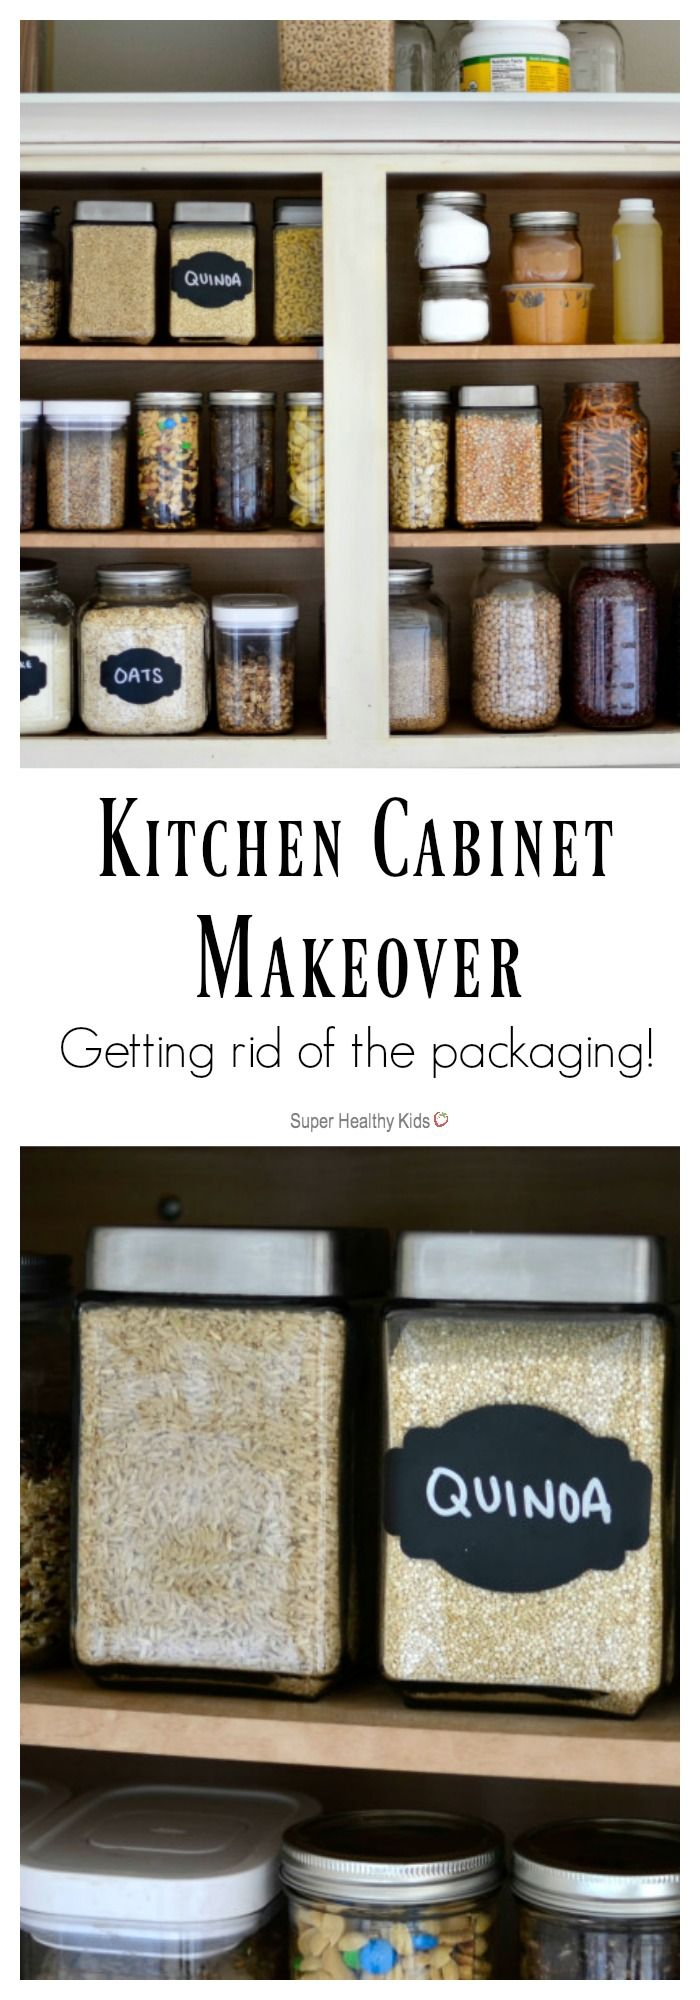 KITCHEN ORGANIZATION - Kitchen Cabinet Makeover- Getting rid of the packaging! Where organization meets small kitchen! http://www.superhealthykids.com/kitchen-cabinet-makeover-getting-rid-of-the-packaging/